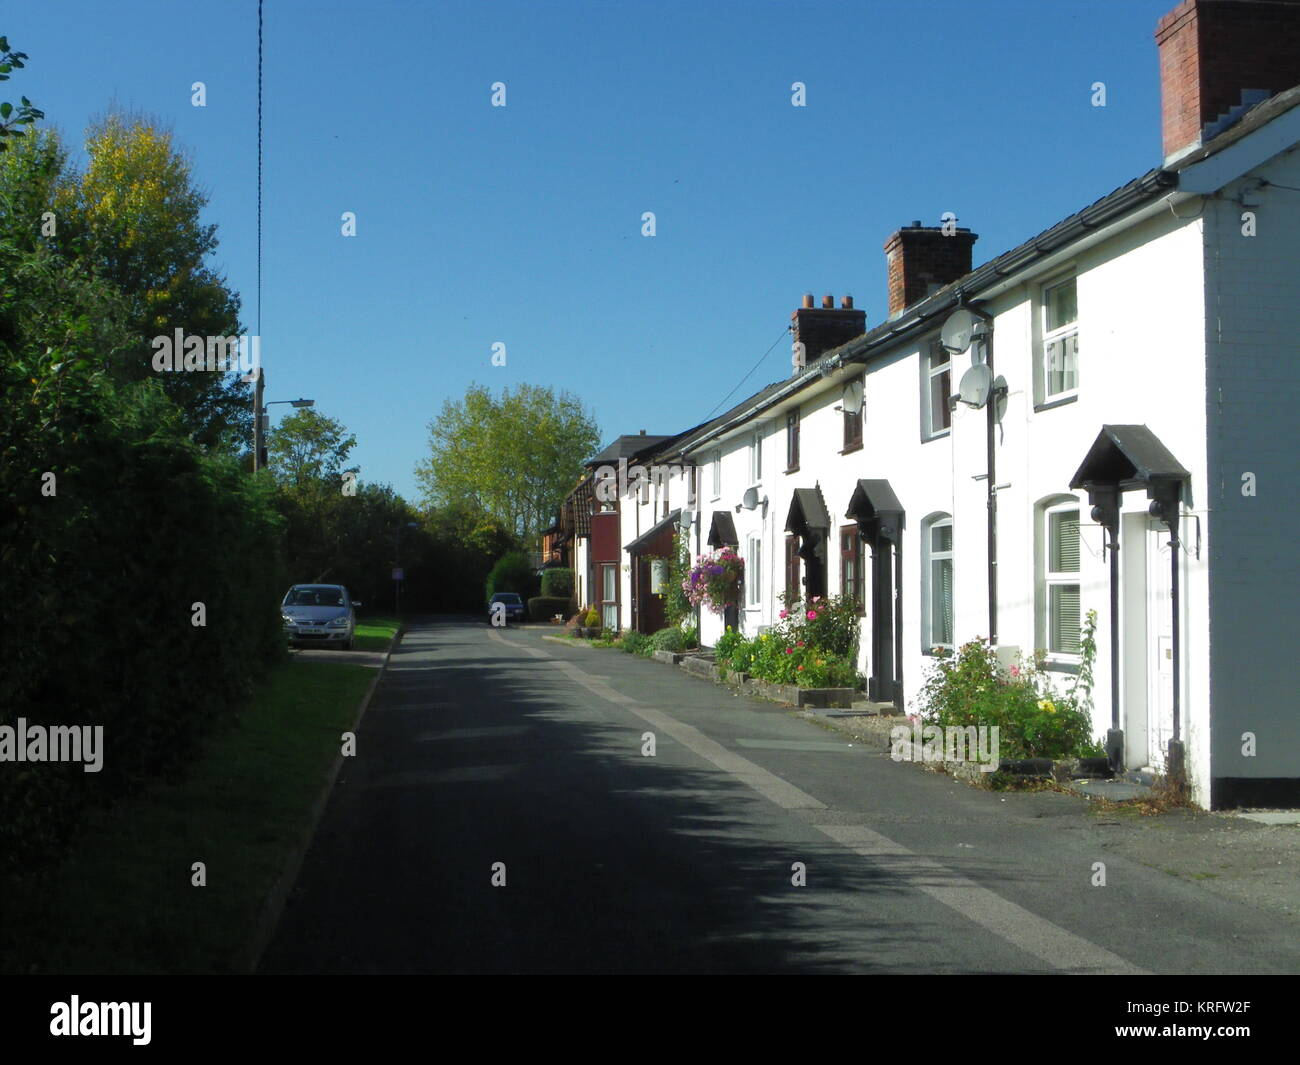 Row of white painted houses at Newtown, Powys, Wales.      Date: 2011 - Stock Image